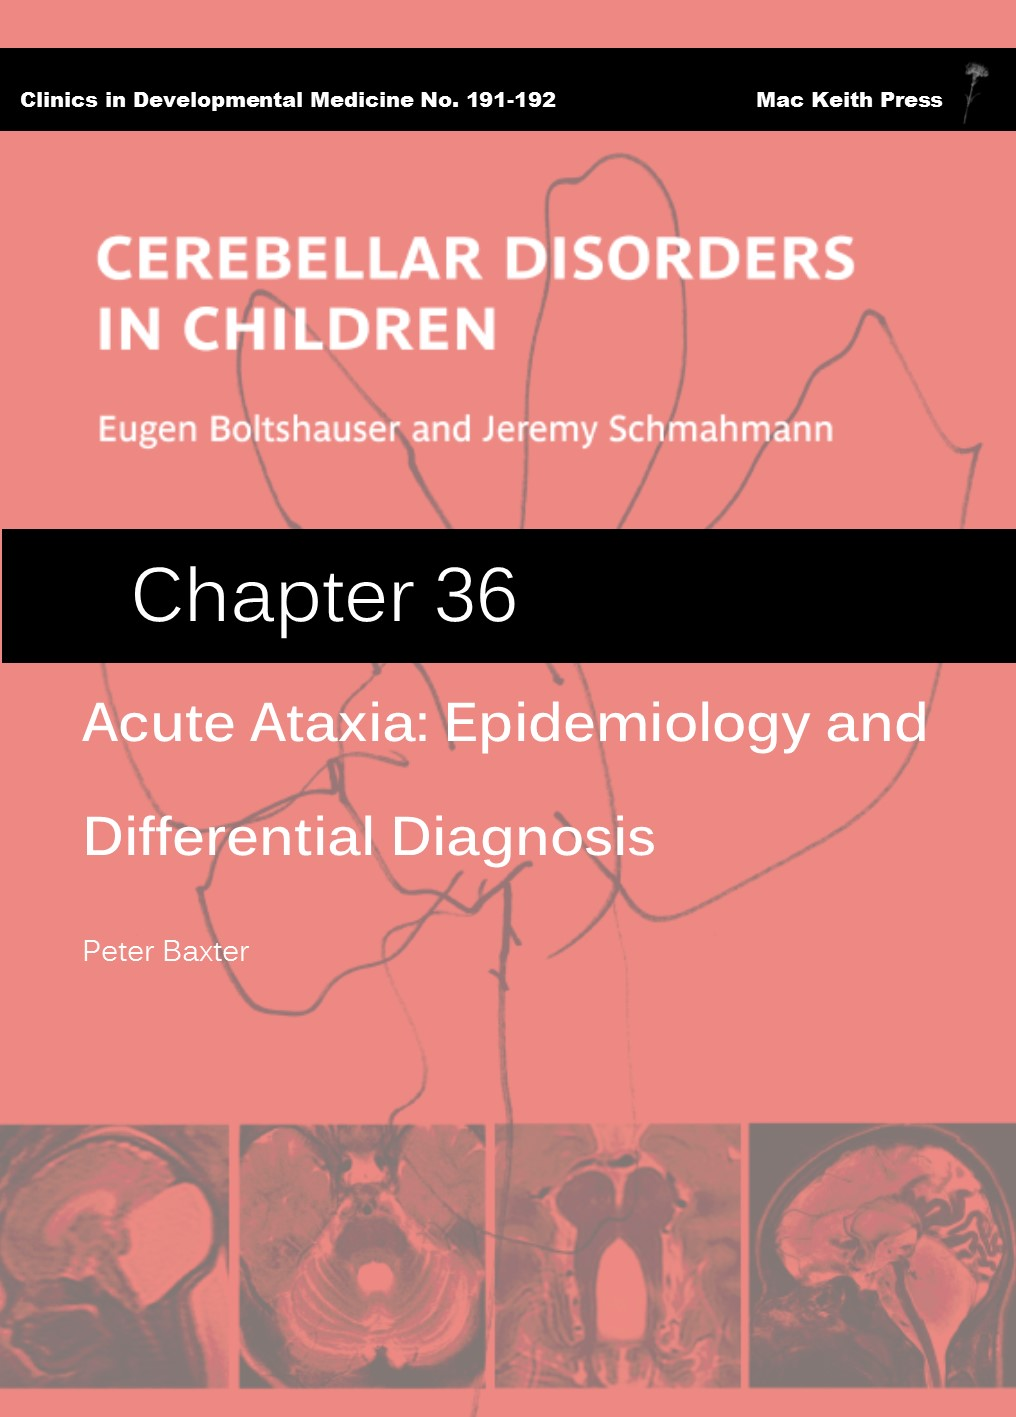 Acute Ataxia: Epidemiology and Differential Diagnosis - Cerebellar Disorders in Children (Chapter 36) COVER